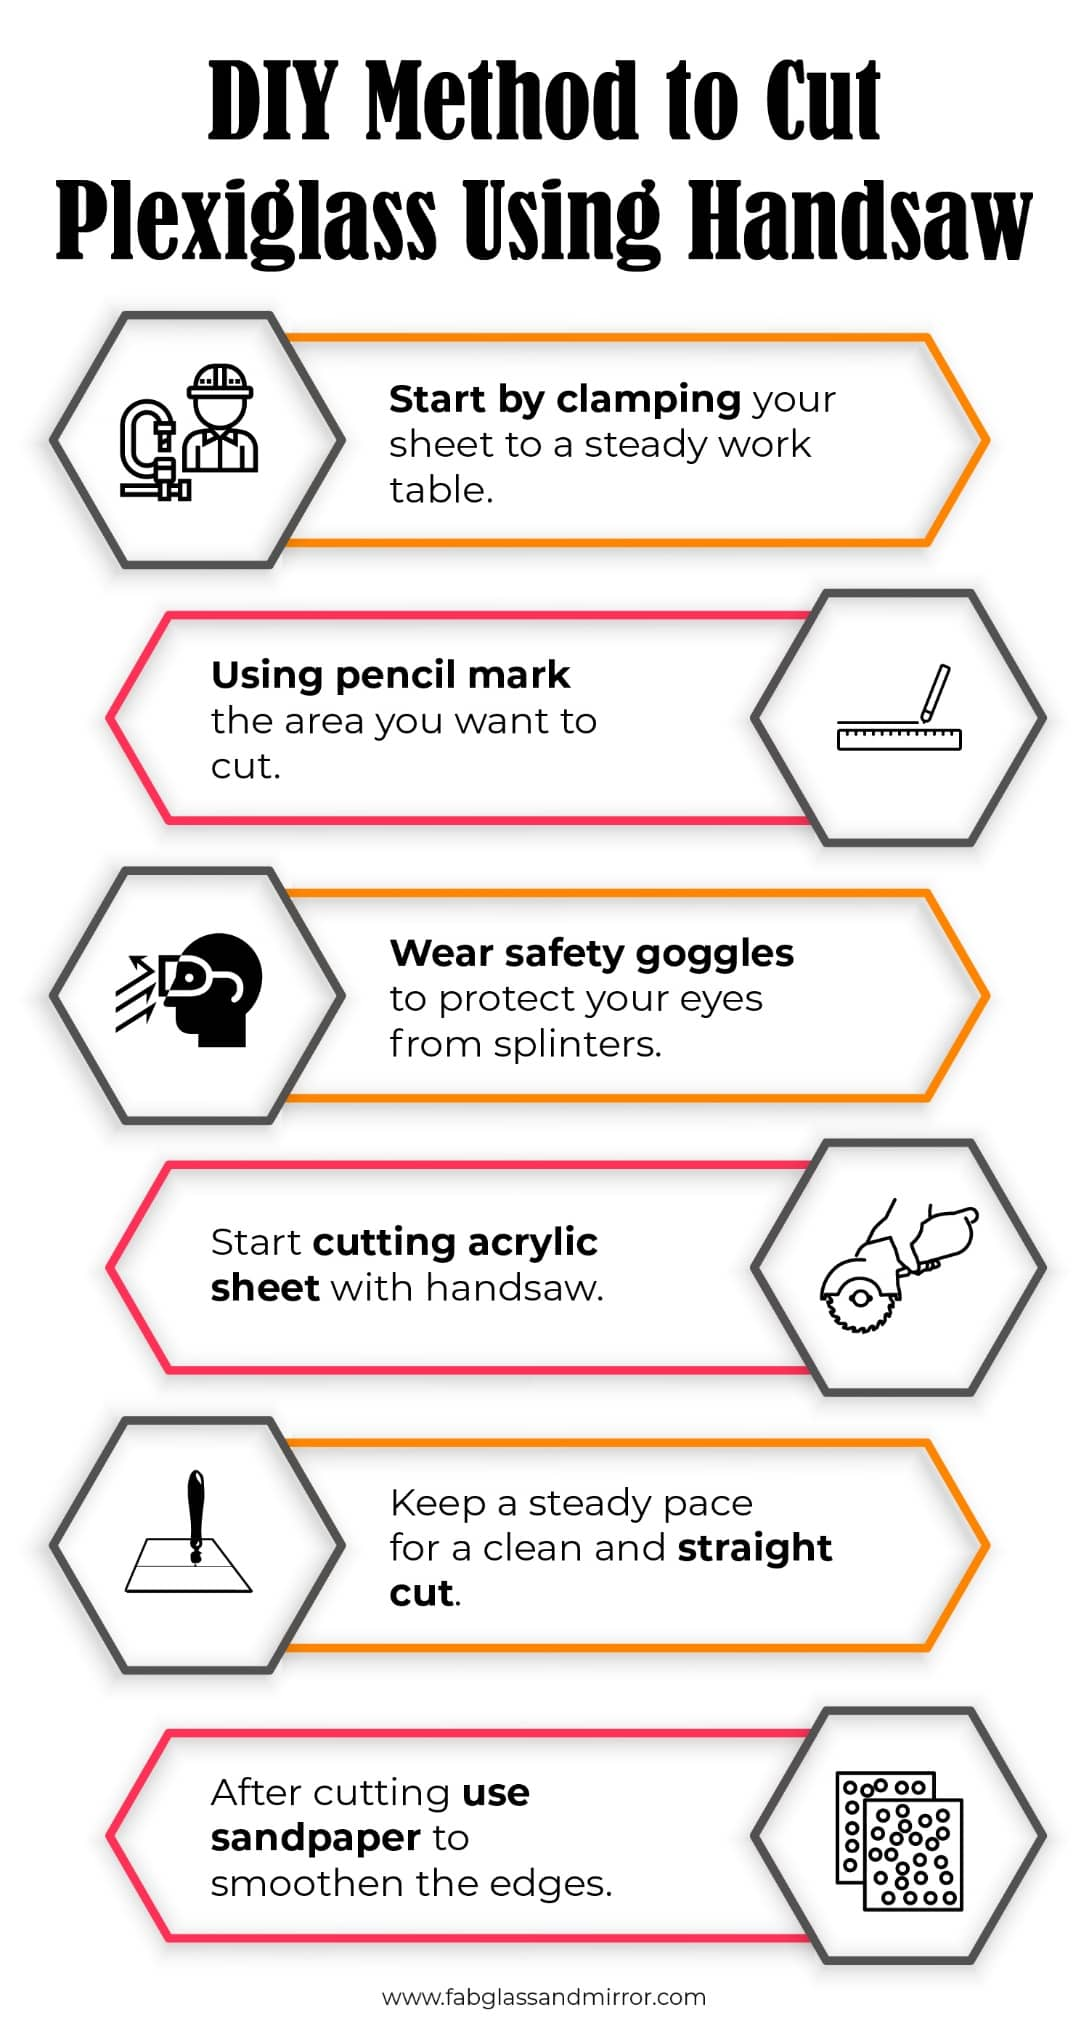 Comprehensive Guide to DIY Cut Plexiglass and Making Awesome Craftwork. Infographics of the diy plexiglass cutting with the handsaw